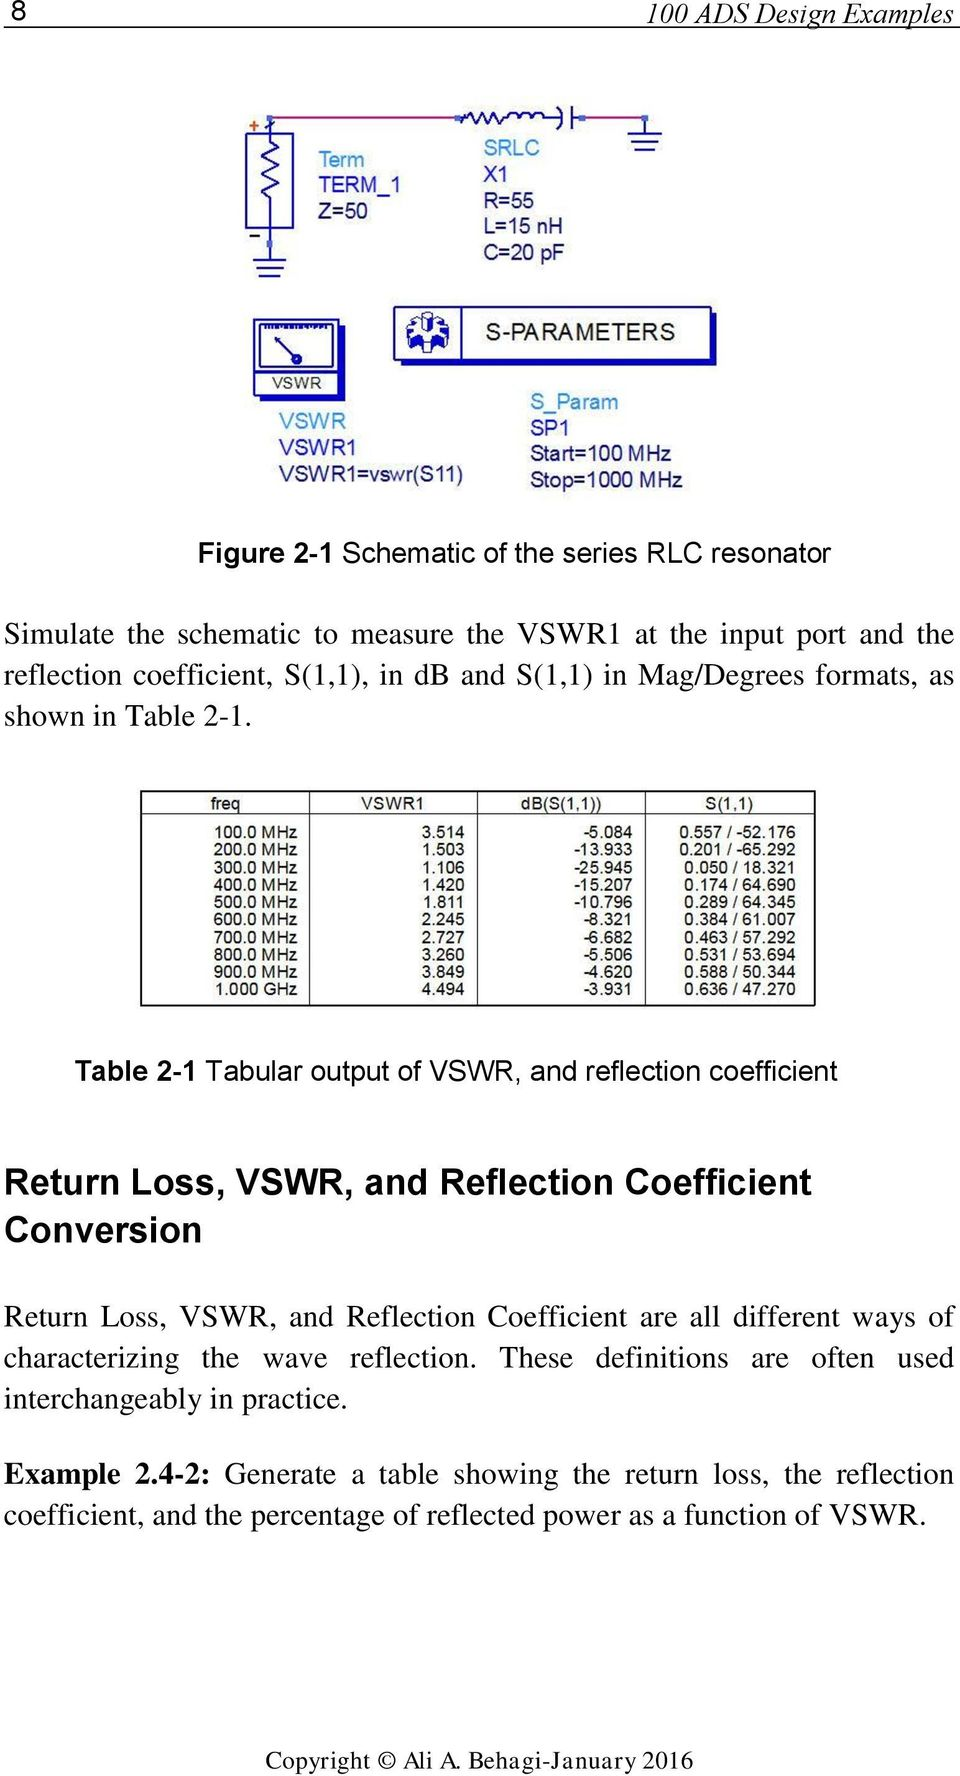 100 Ads Design Examples A Approach Using Pdf Return To Circuits Circuit Ideas Table 2 1 Tabular Output Of Vswr And Reflection Coefficient Loss